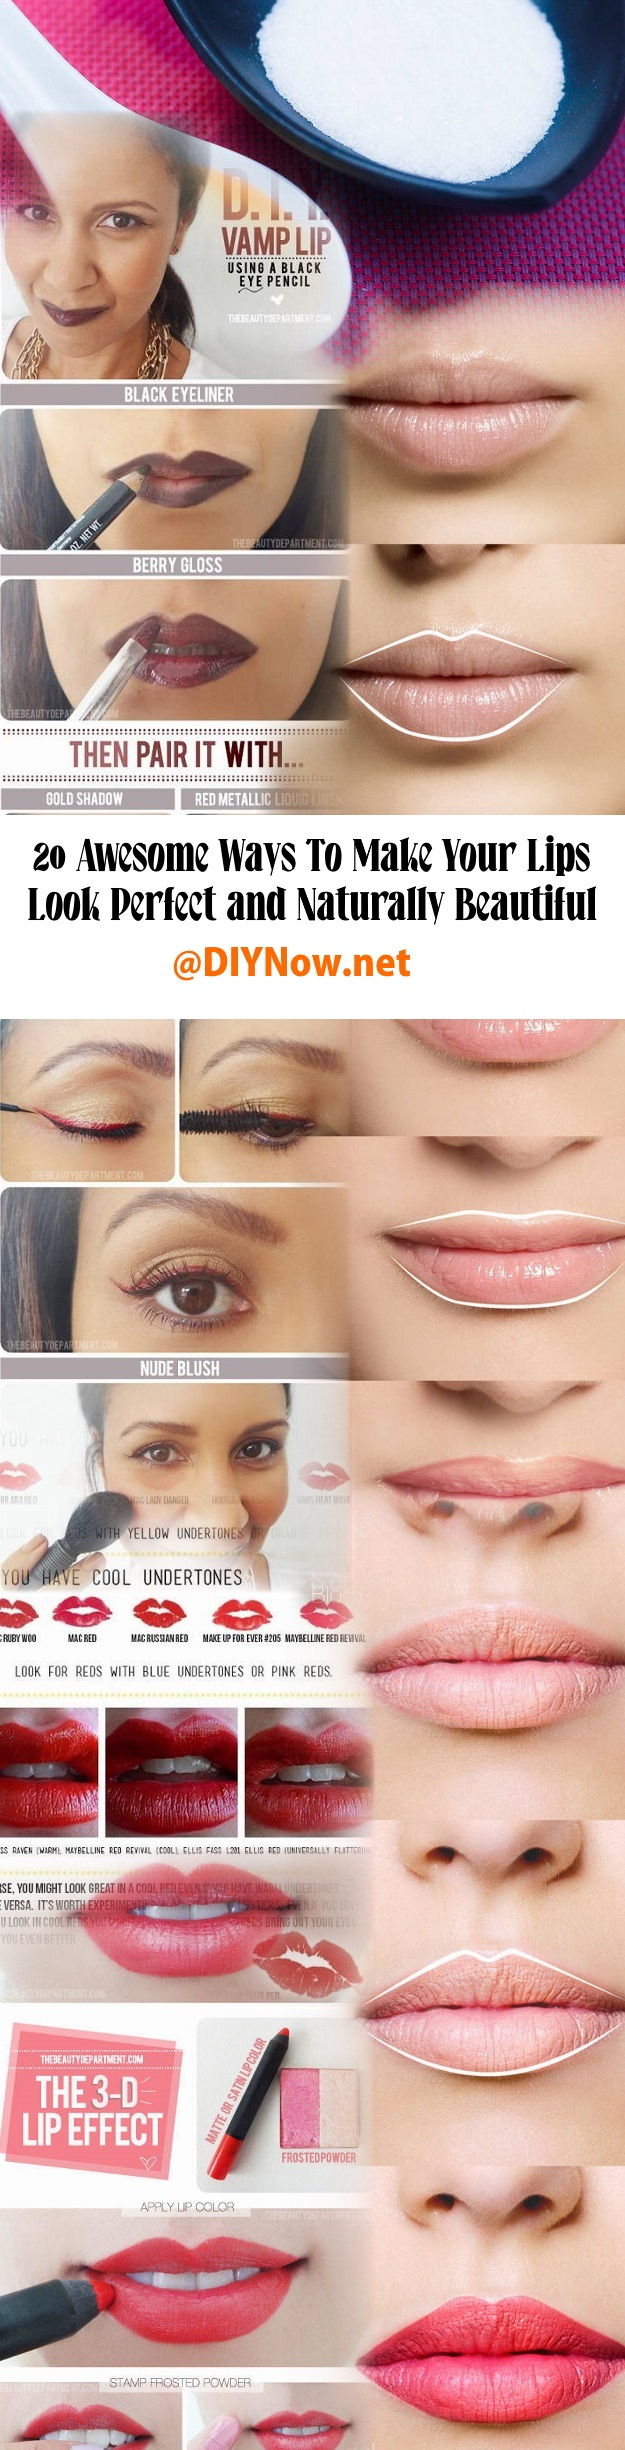 20 Awesome Ways To Make Your Lips Look Perfect and Naturally Beautiful